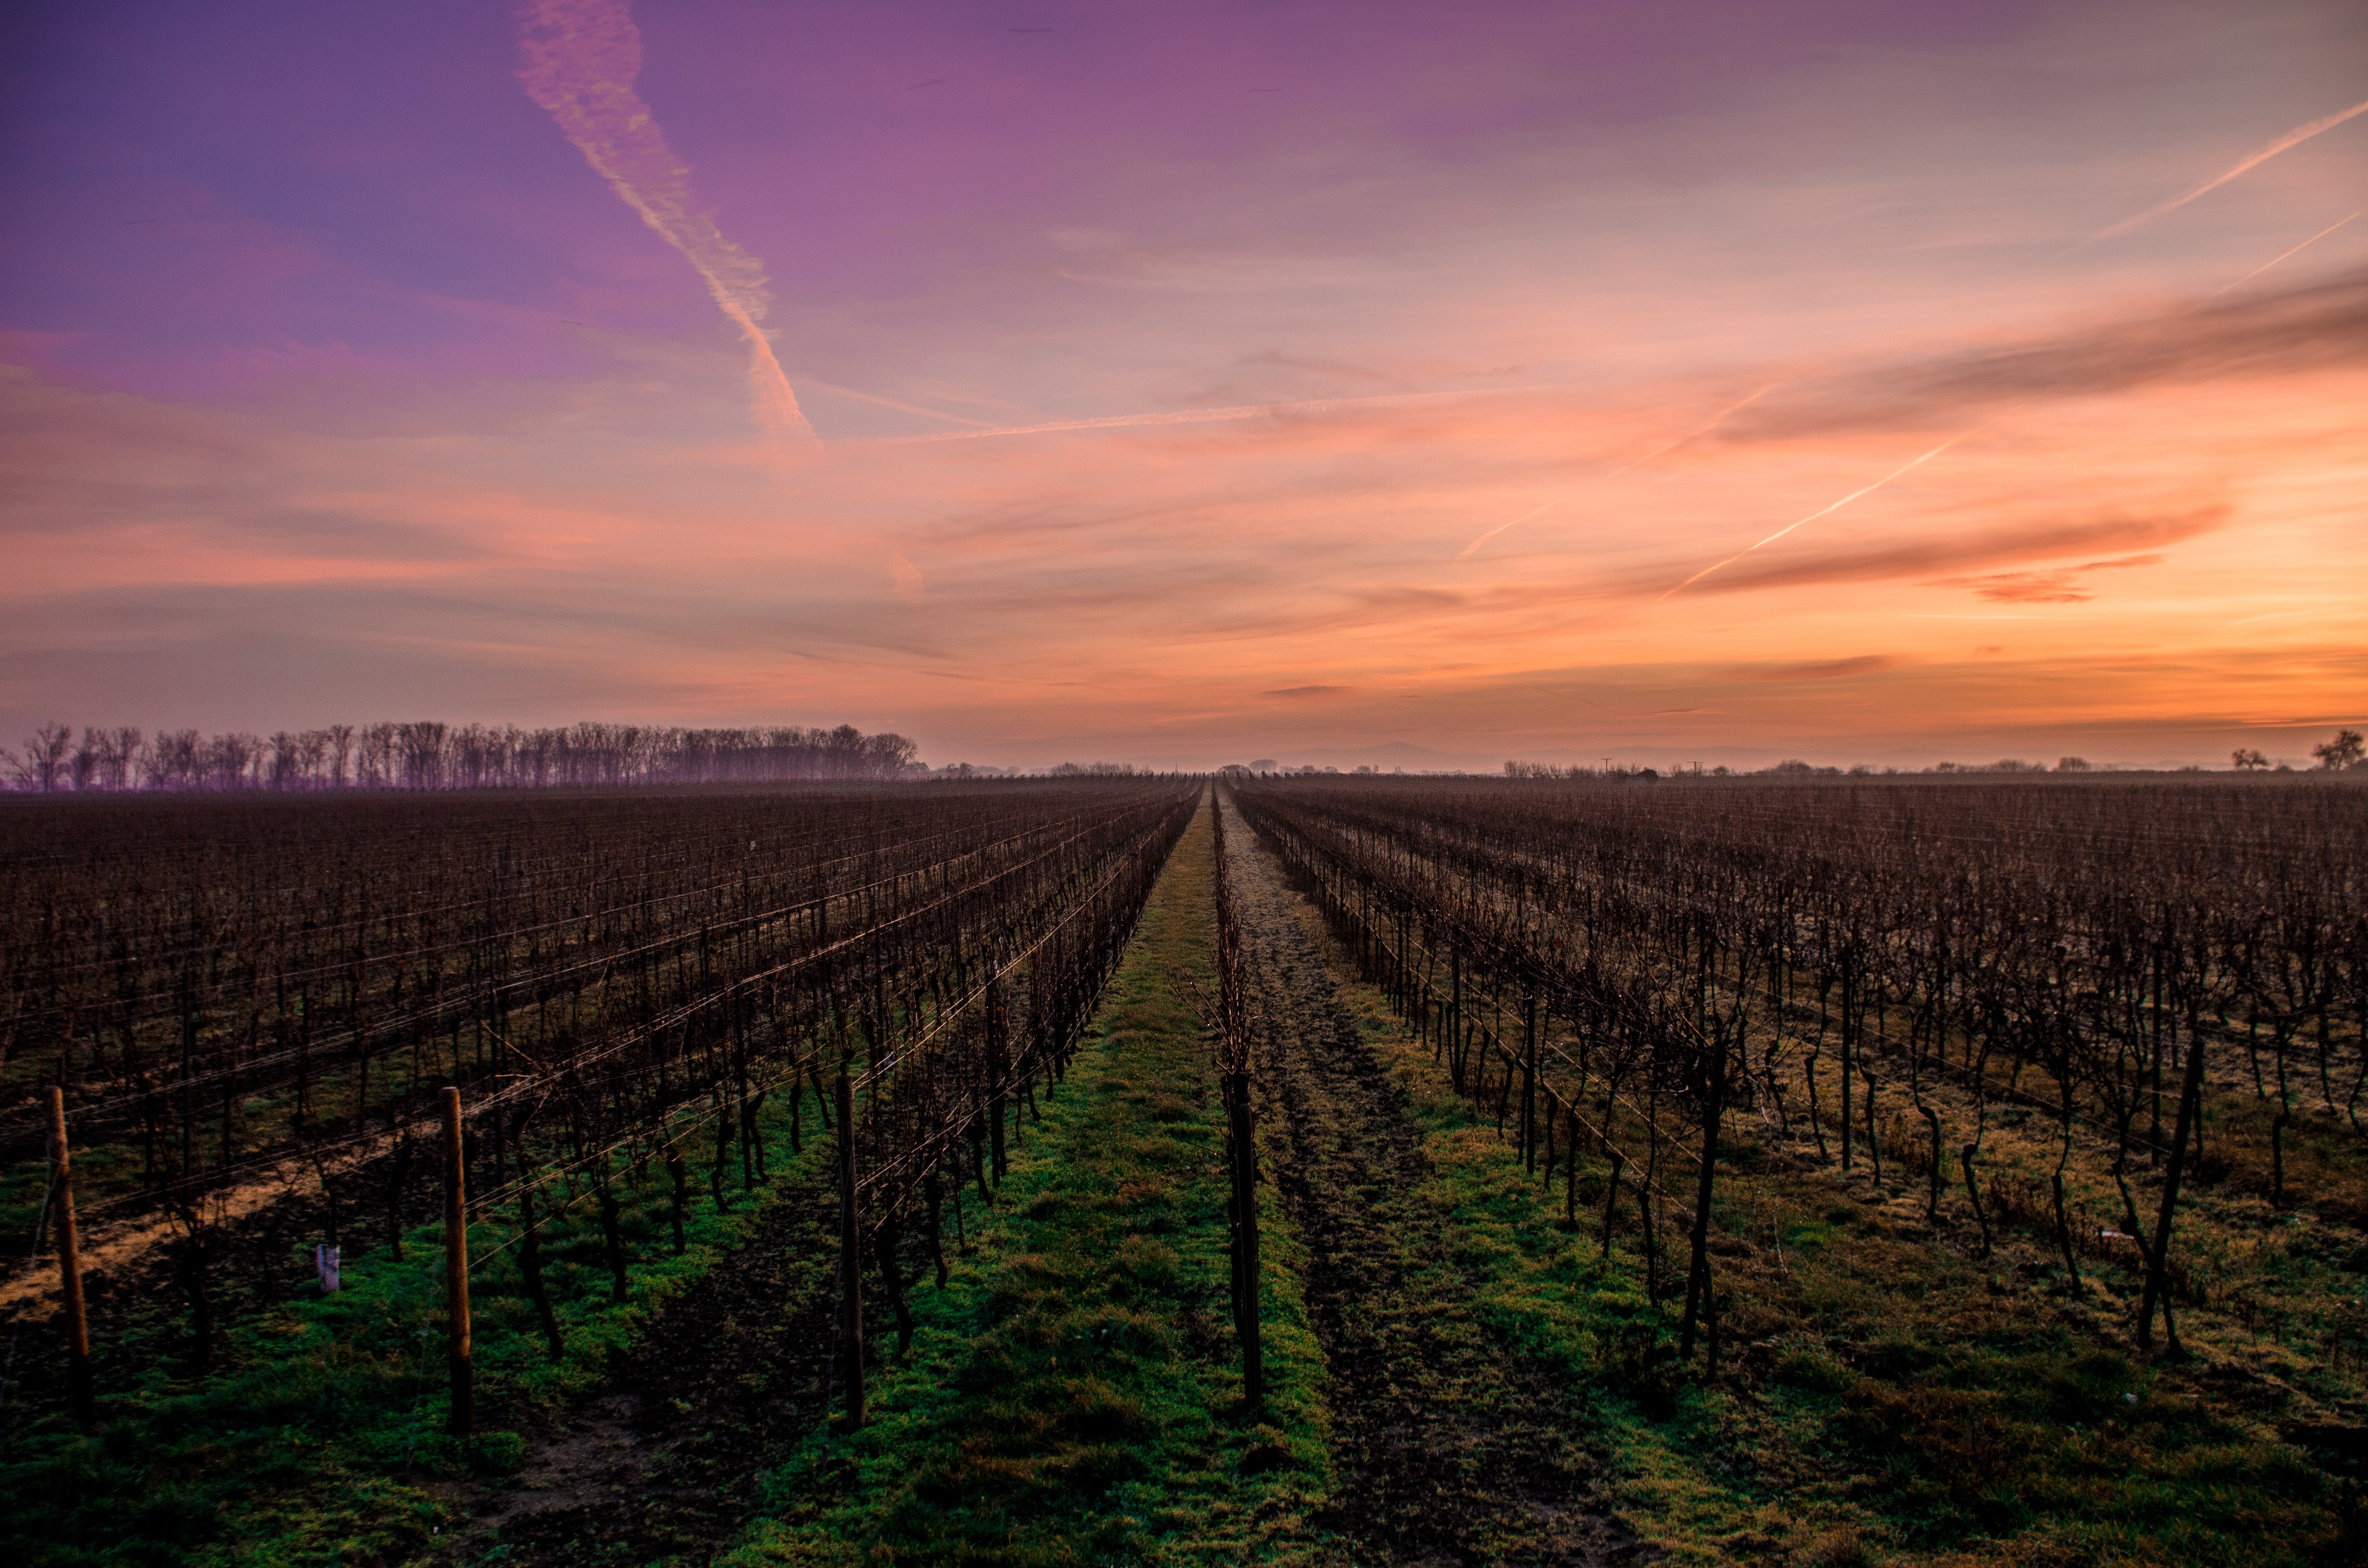 A row of crops at a vineyard during sunrise.